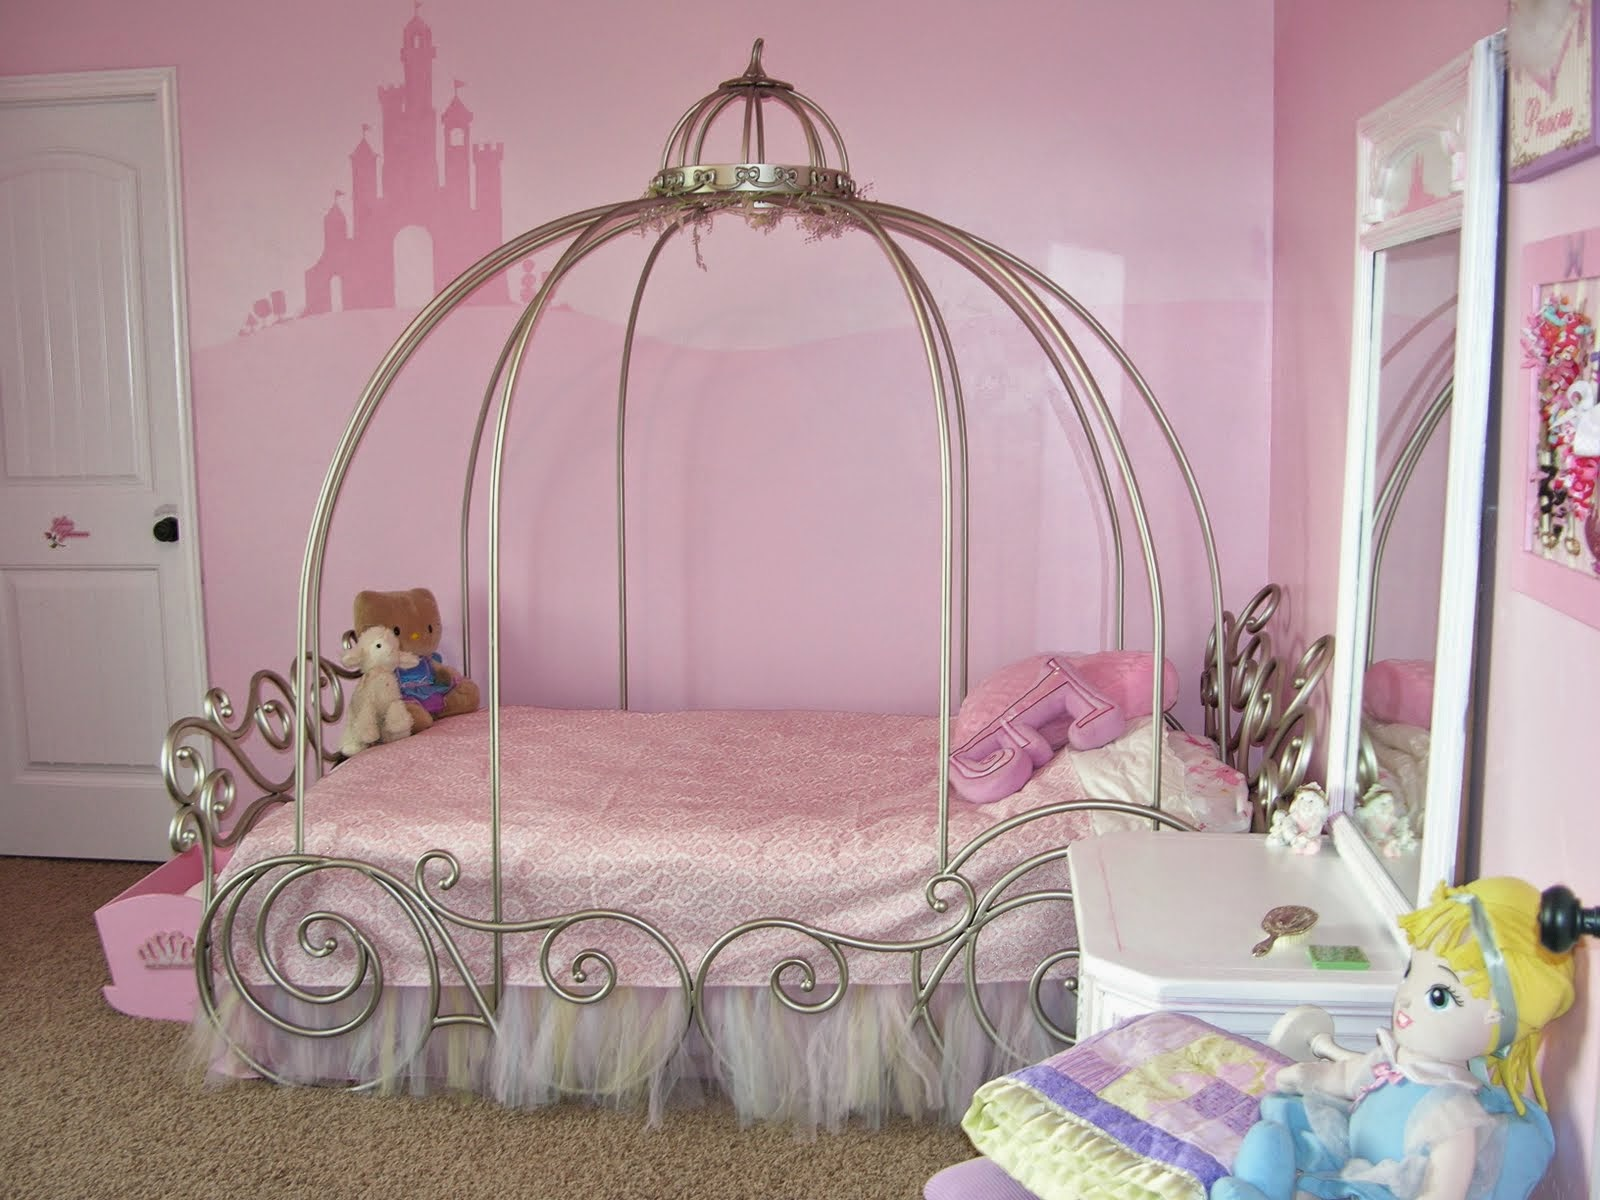 Girlu0027s Room Wall Decorating Ideas